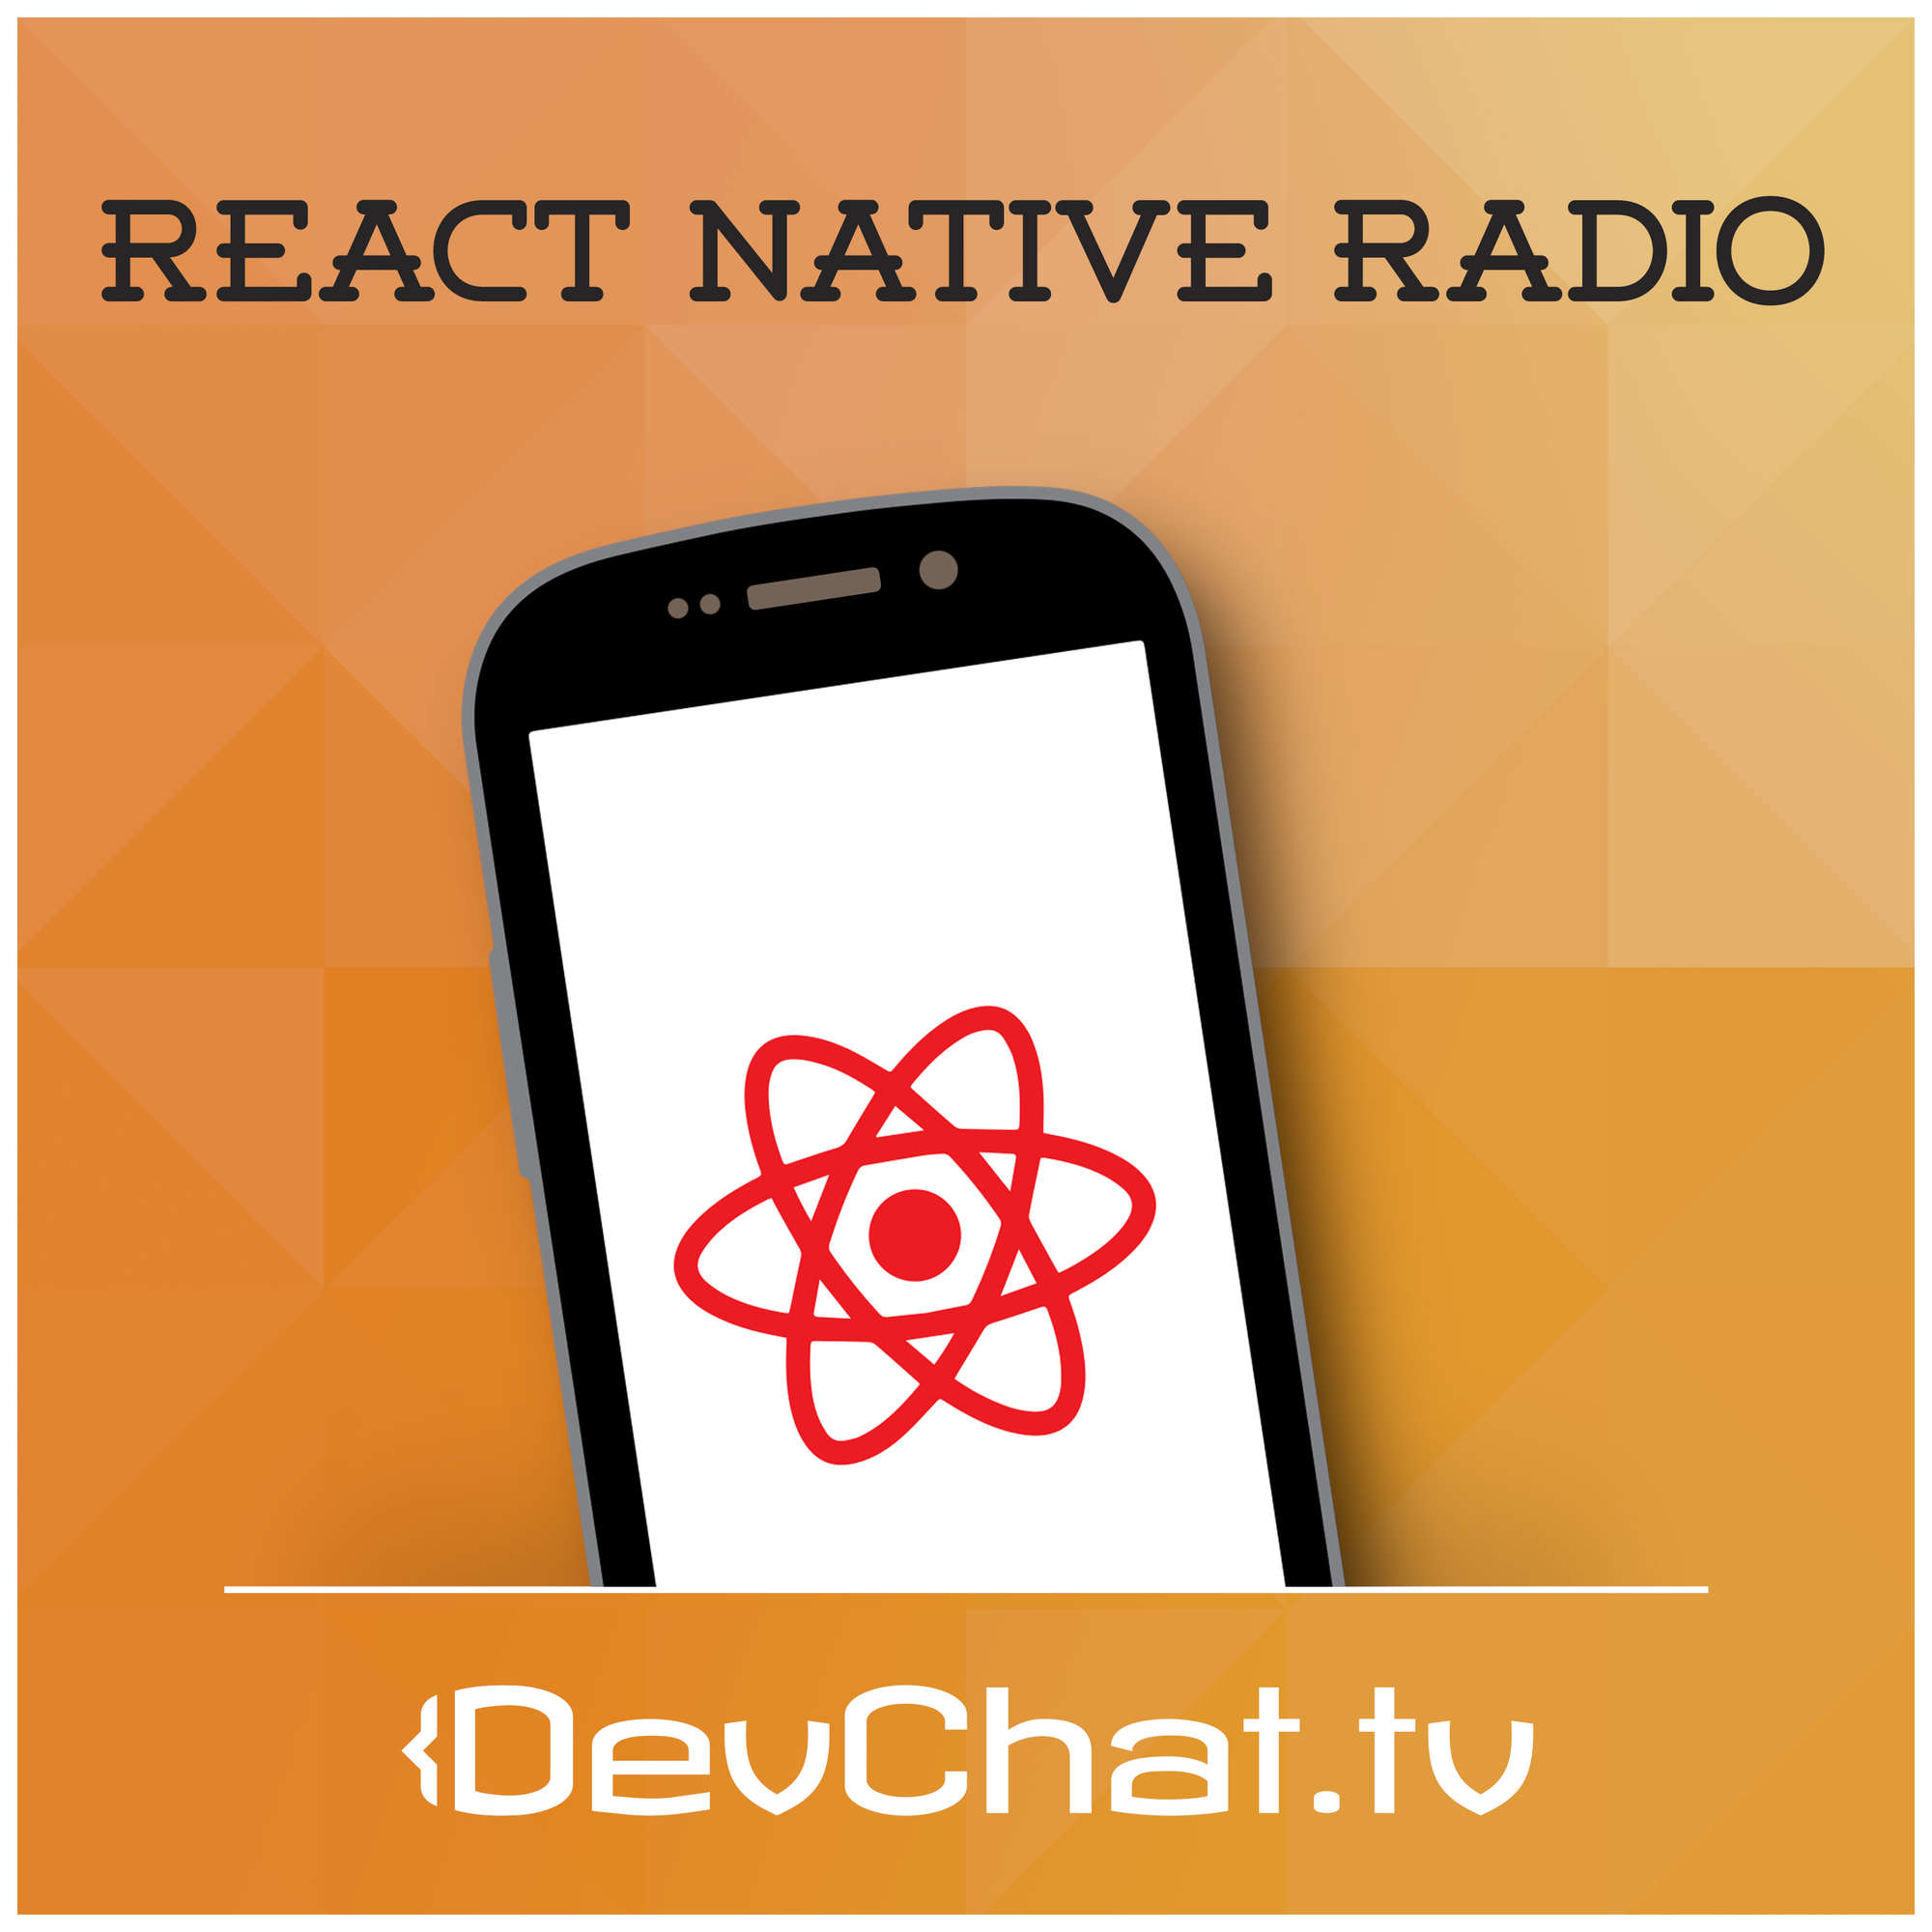 ReactNative_album-art